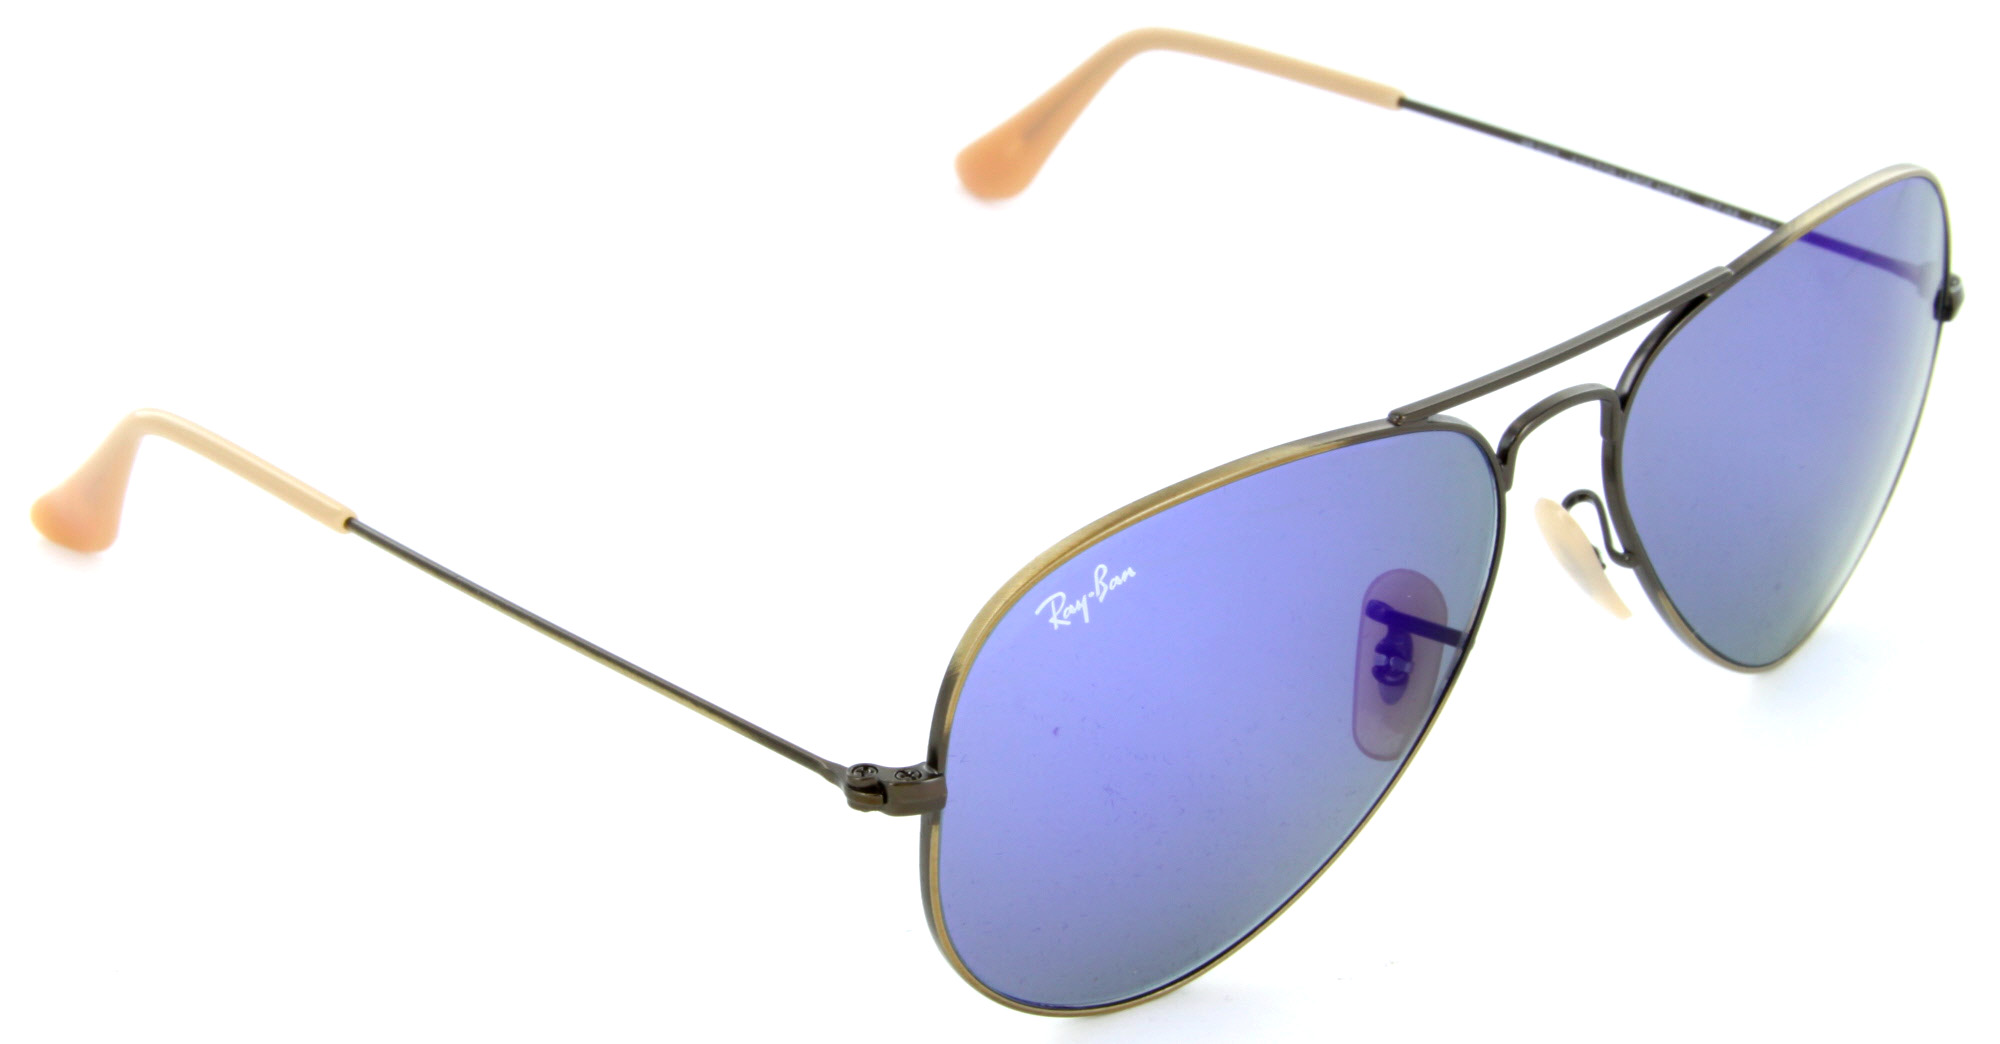 59fa5c2ce0f15 Ray-Ban -- RB3025 Aviator glasses only  123.25. Add lenses for  14.95